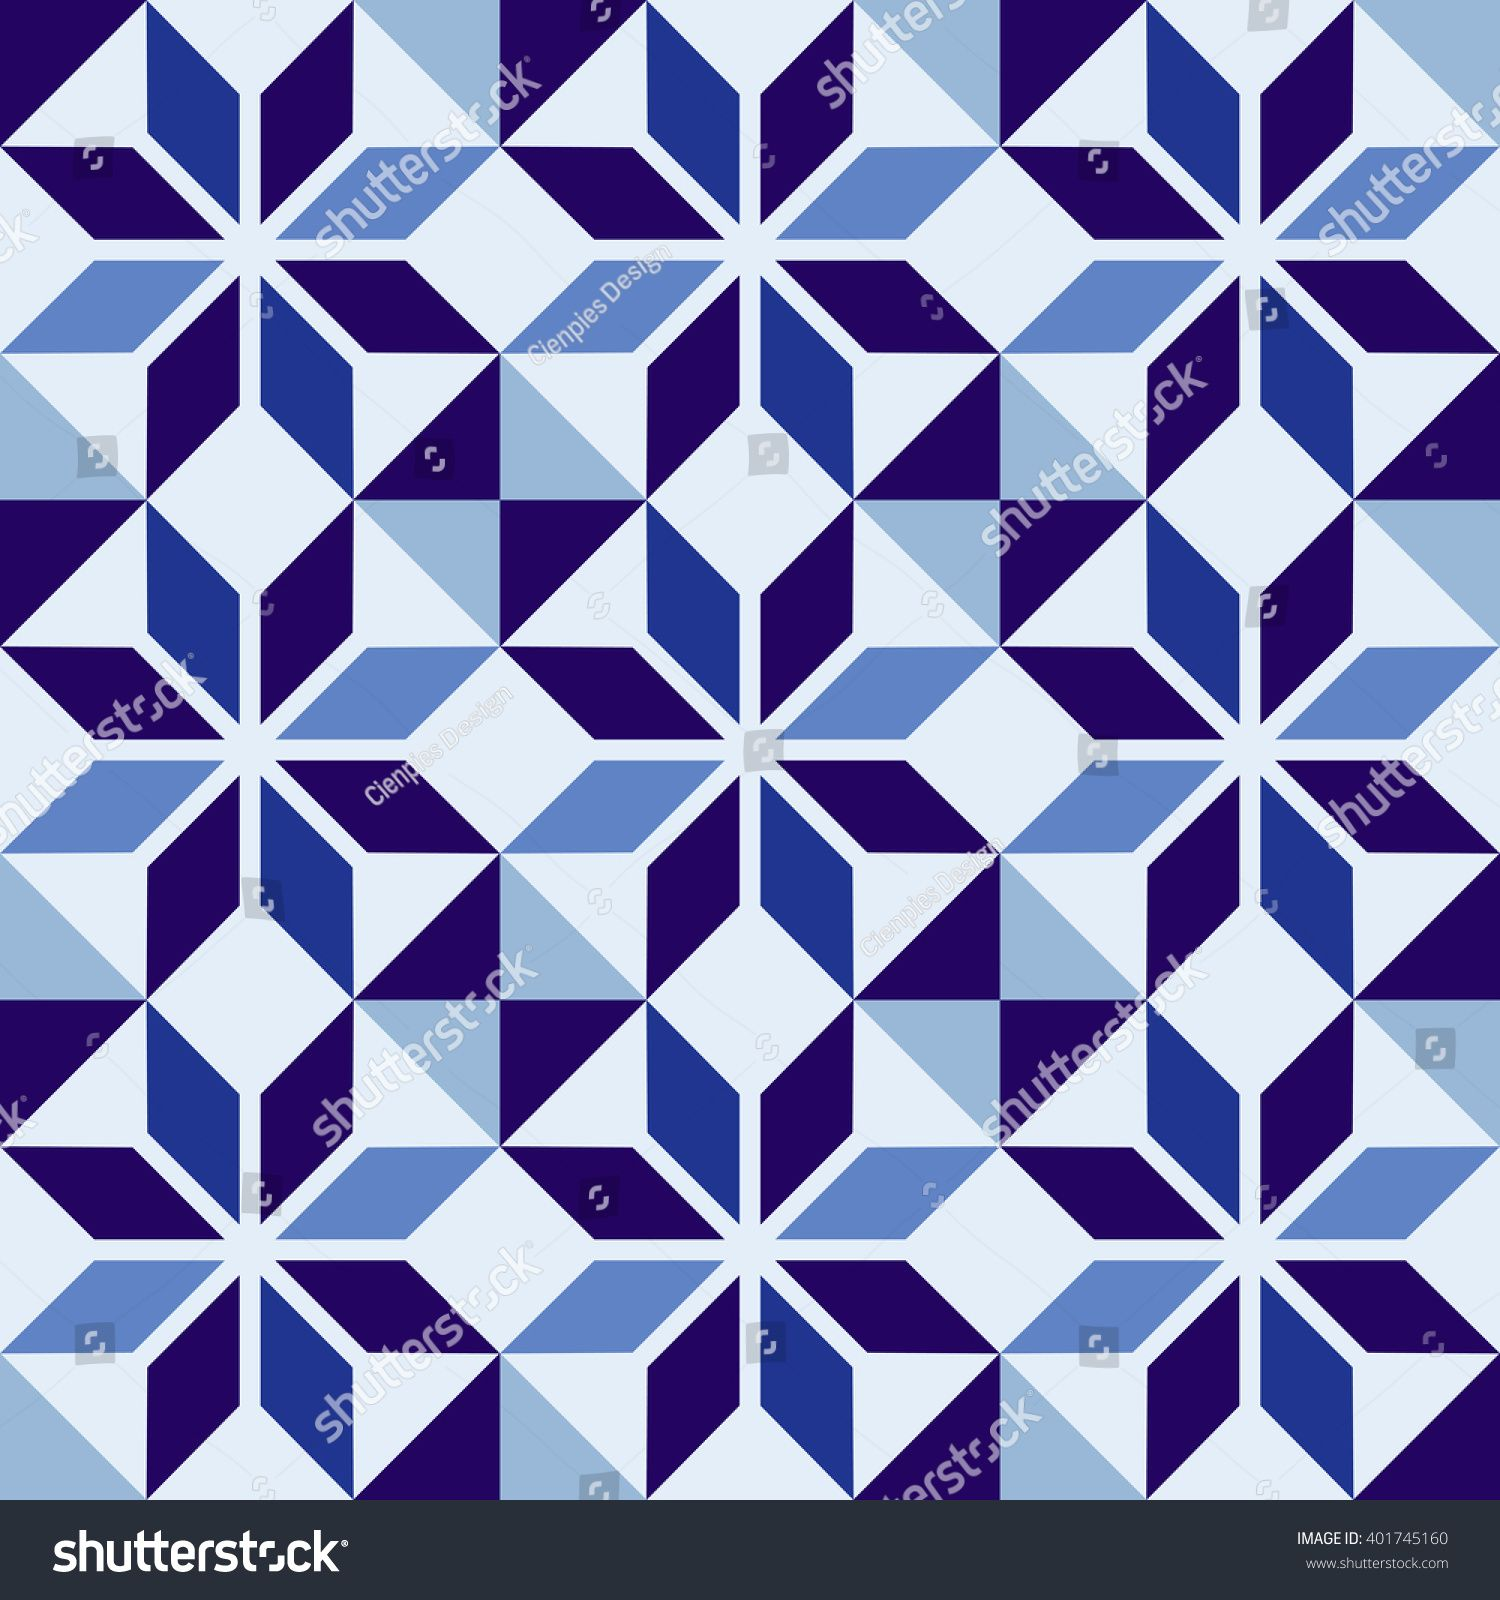 Classic Ceramic Mosaic Tile Seamless Pattern With Abstract